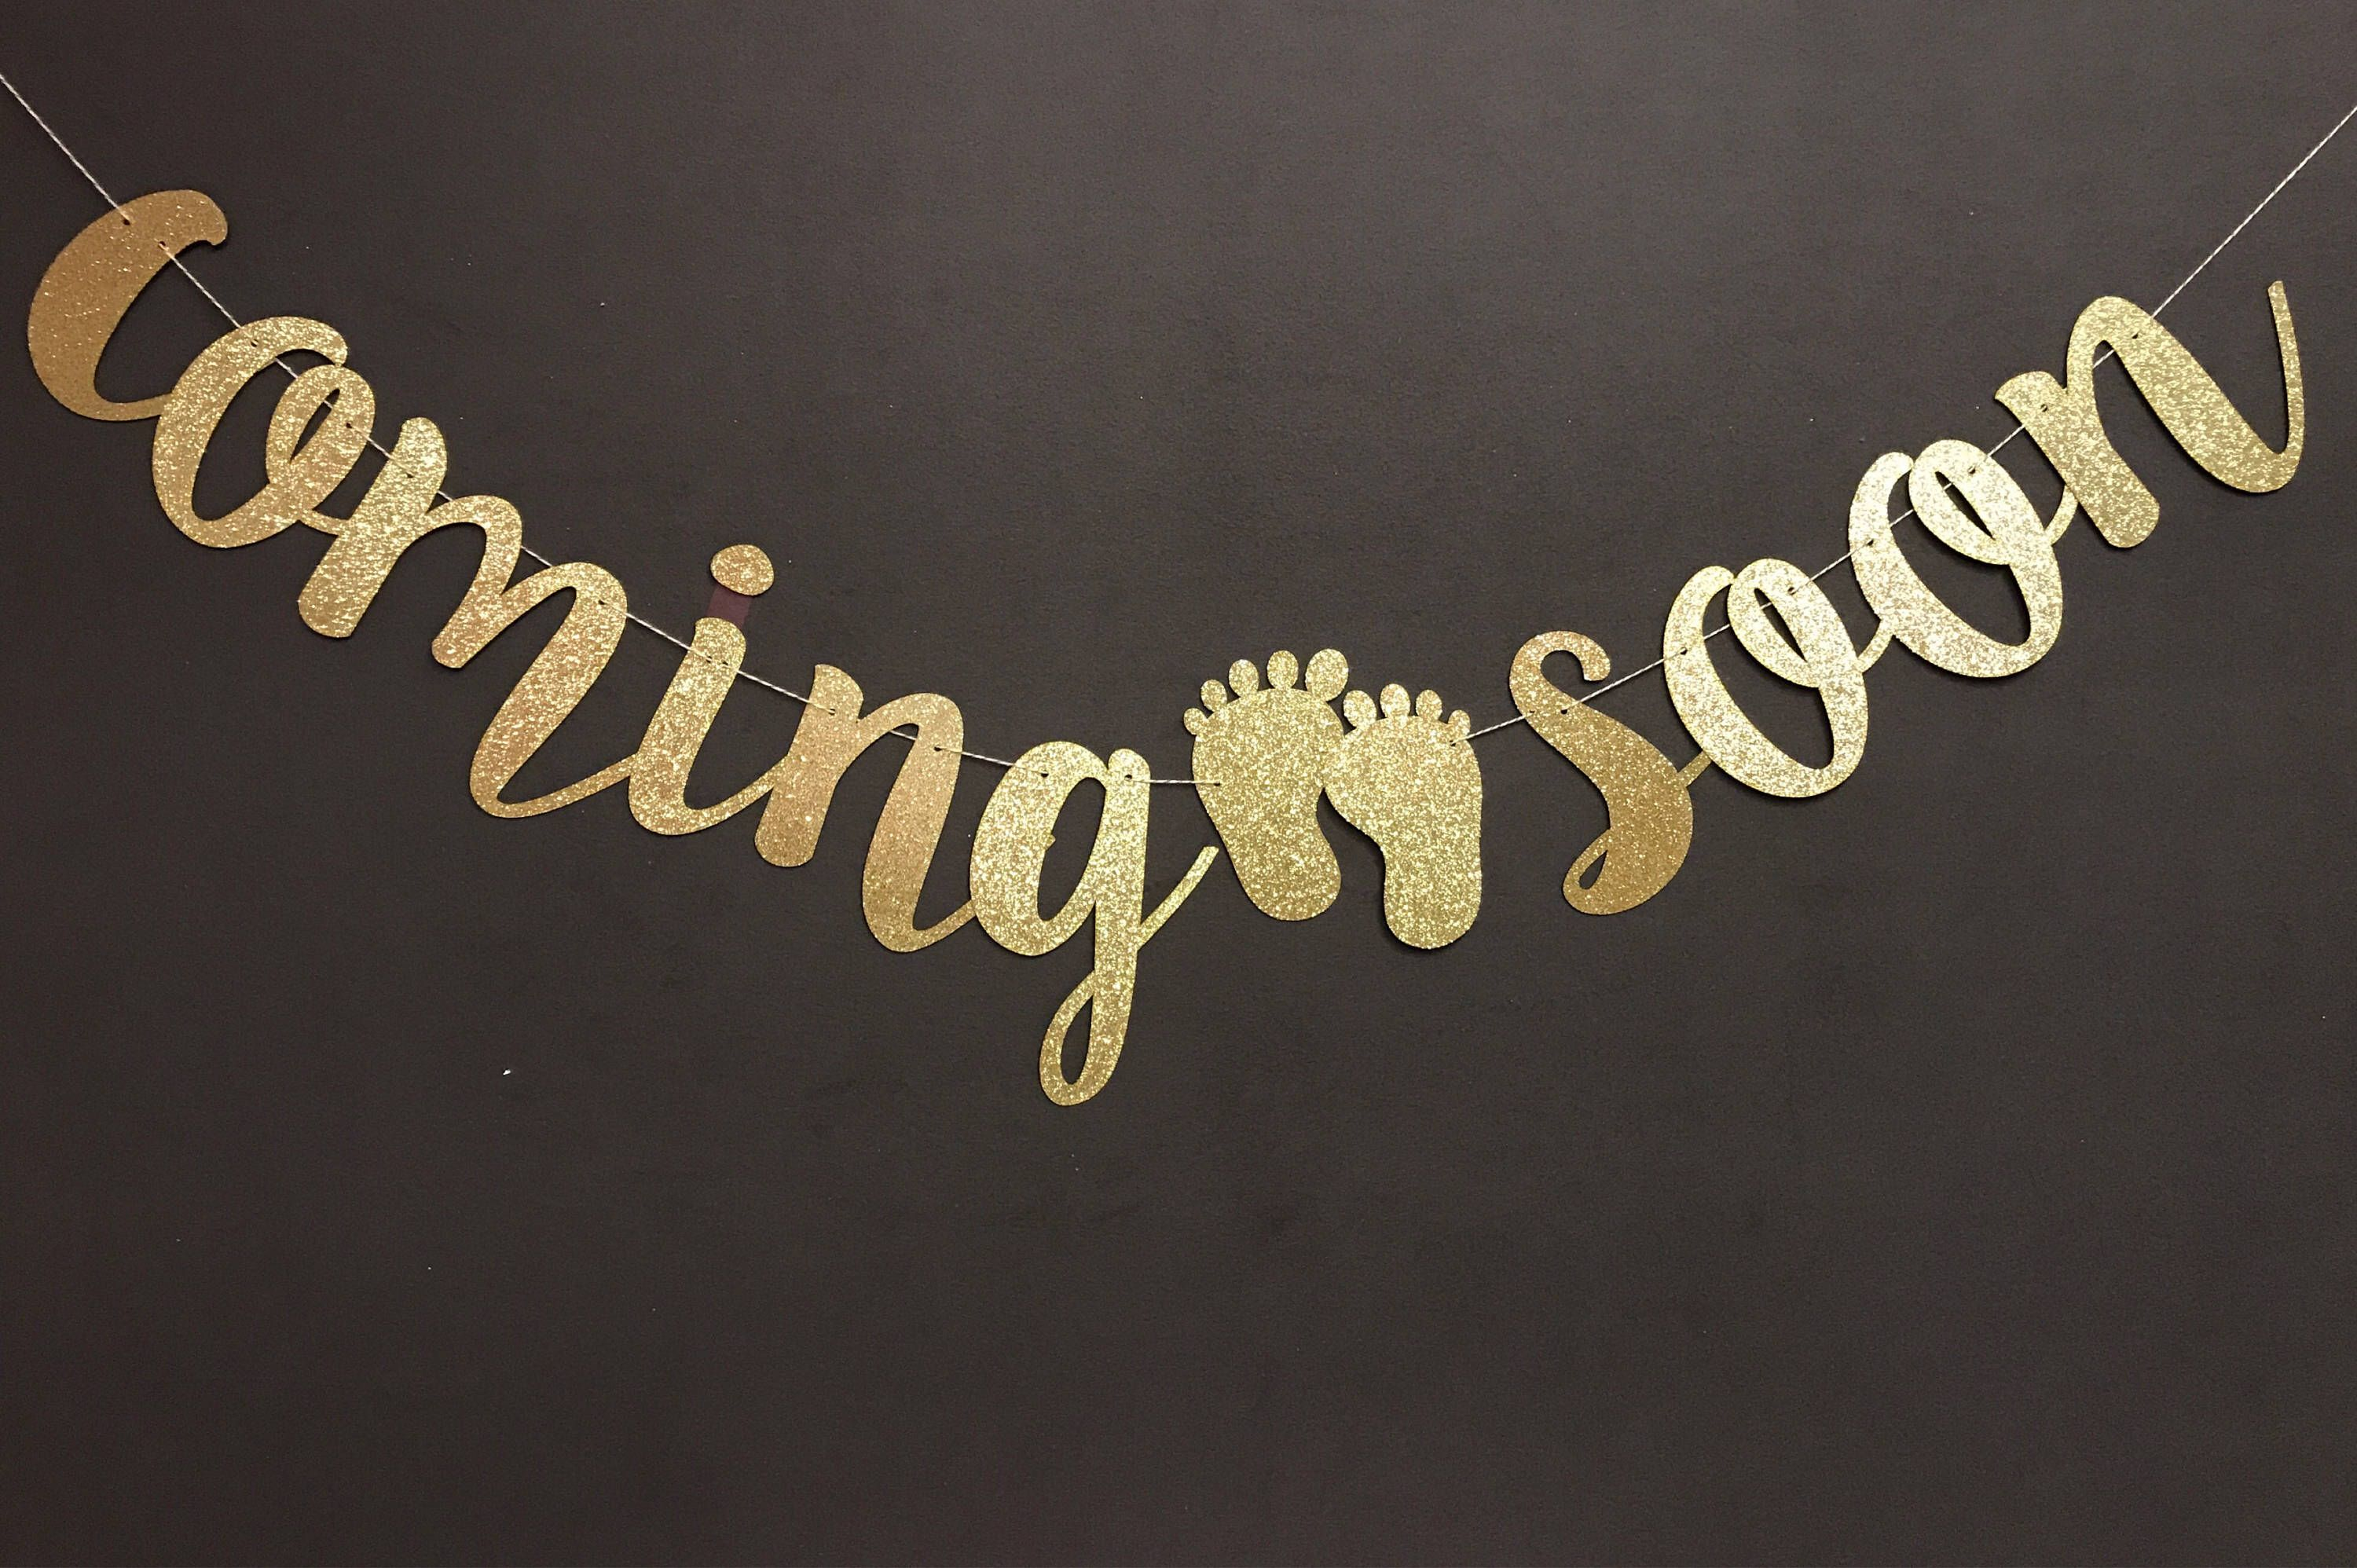 Coming soon Baby Shower Banner, Baby shower decorations.